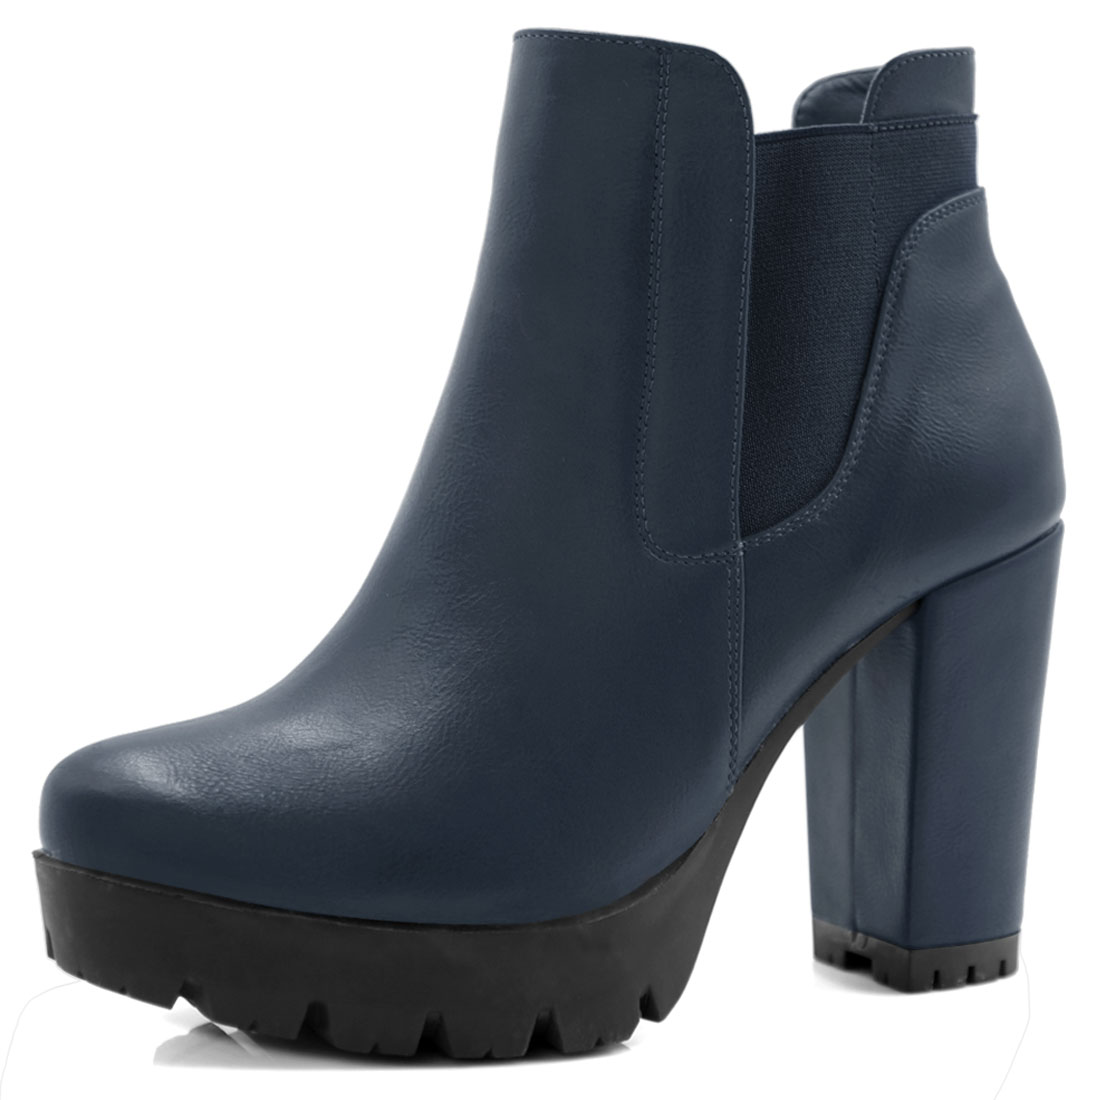 9 Reasons to Add Chunky Platform Boots to Your Wardrobe RightNow